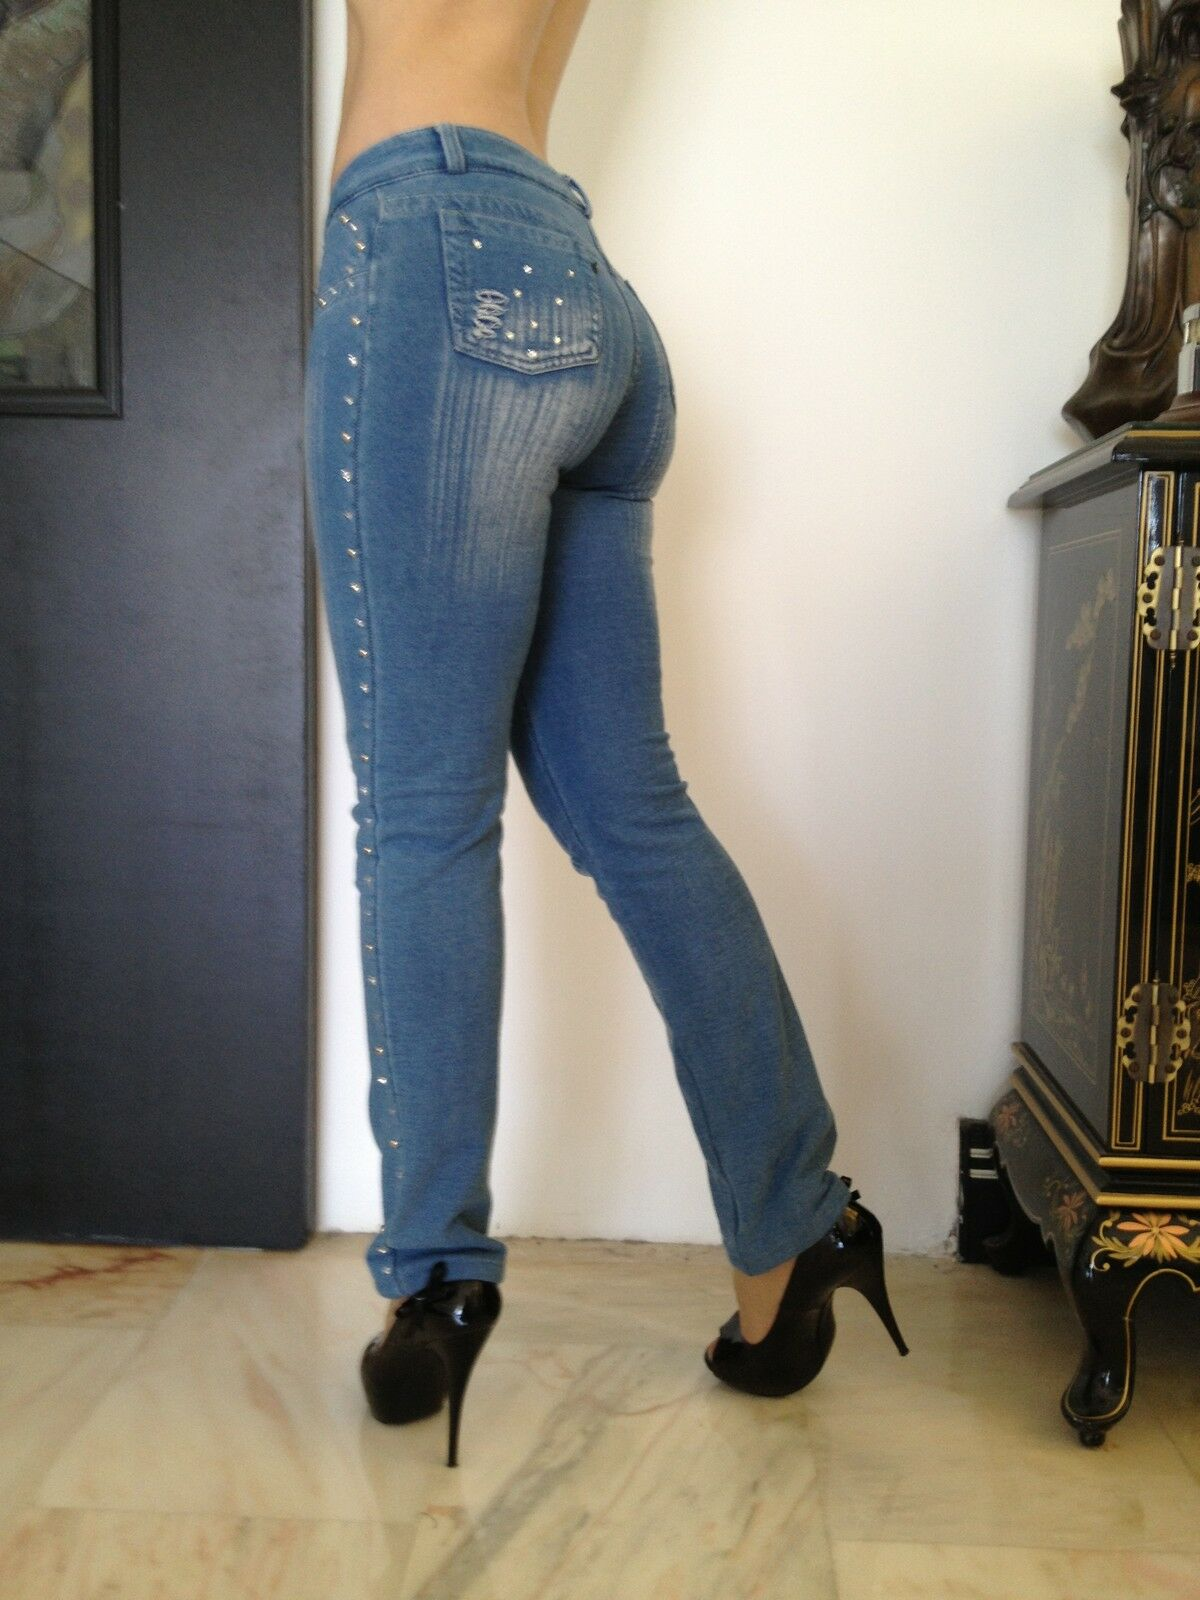 CLEARANCE JOB LOT  10 PAIRS OF DESIGNER JEANS SERIOUS QUALITY BRAZILIAN last 10